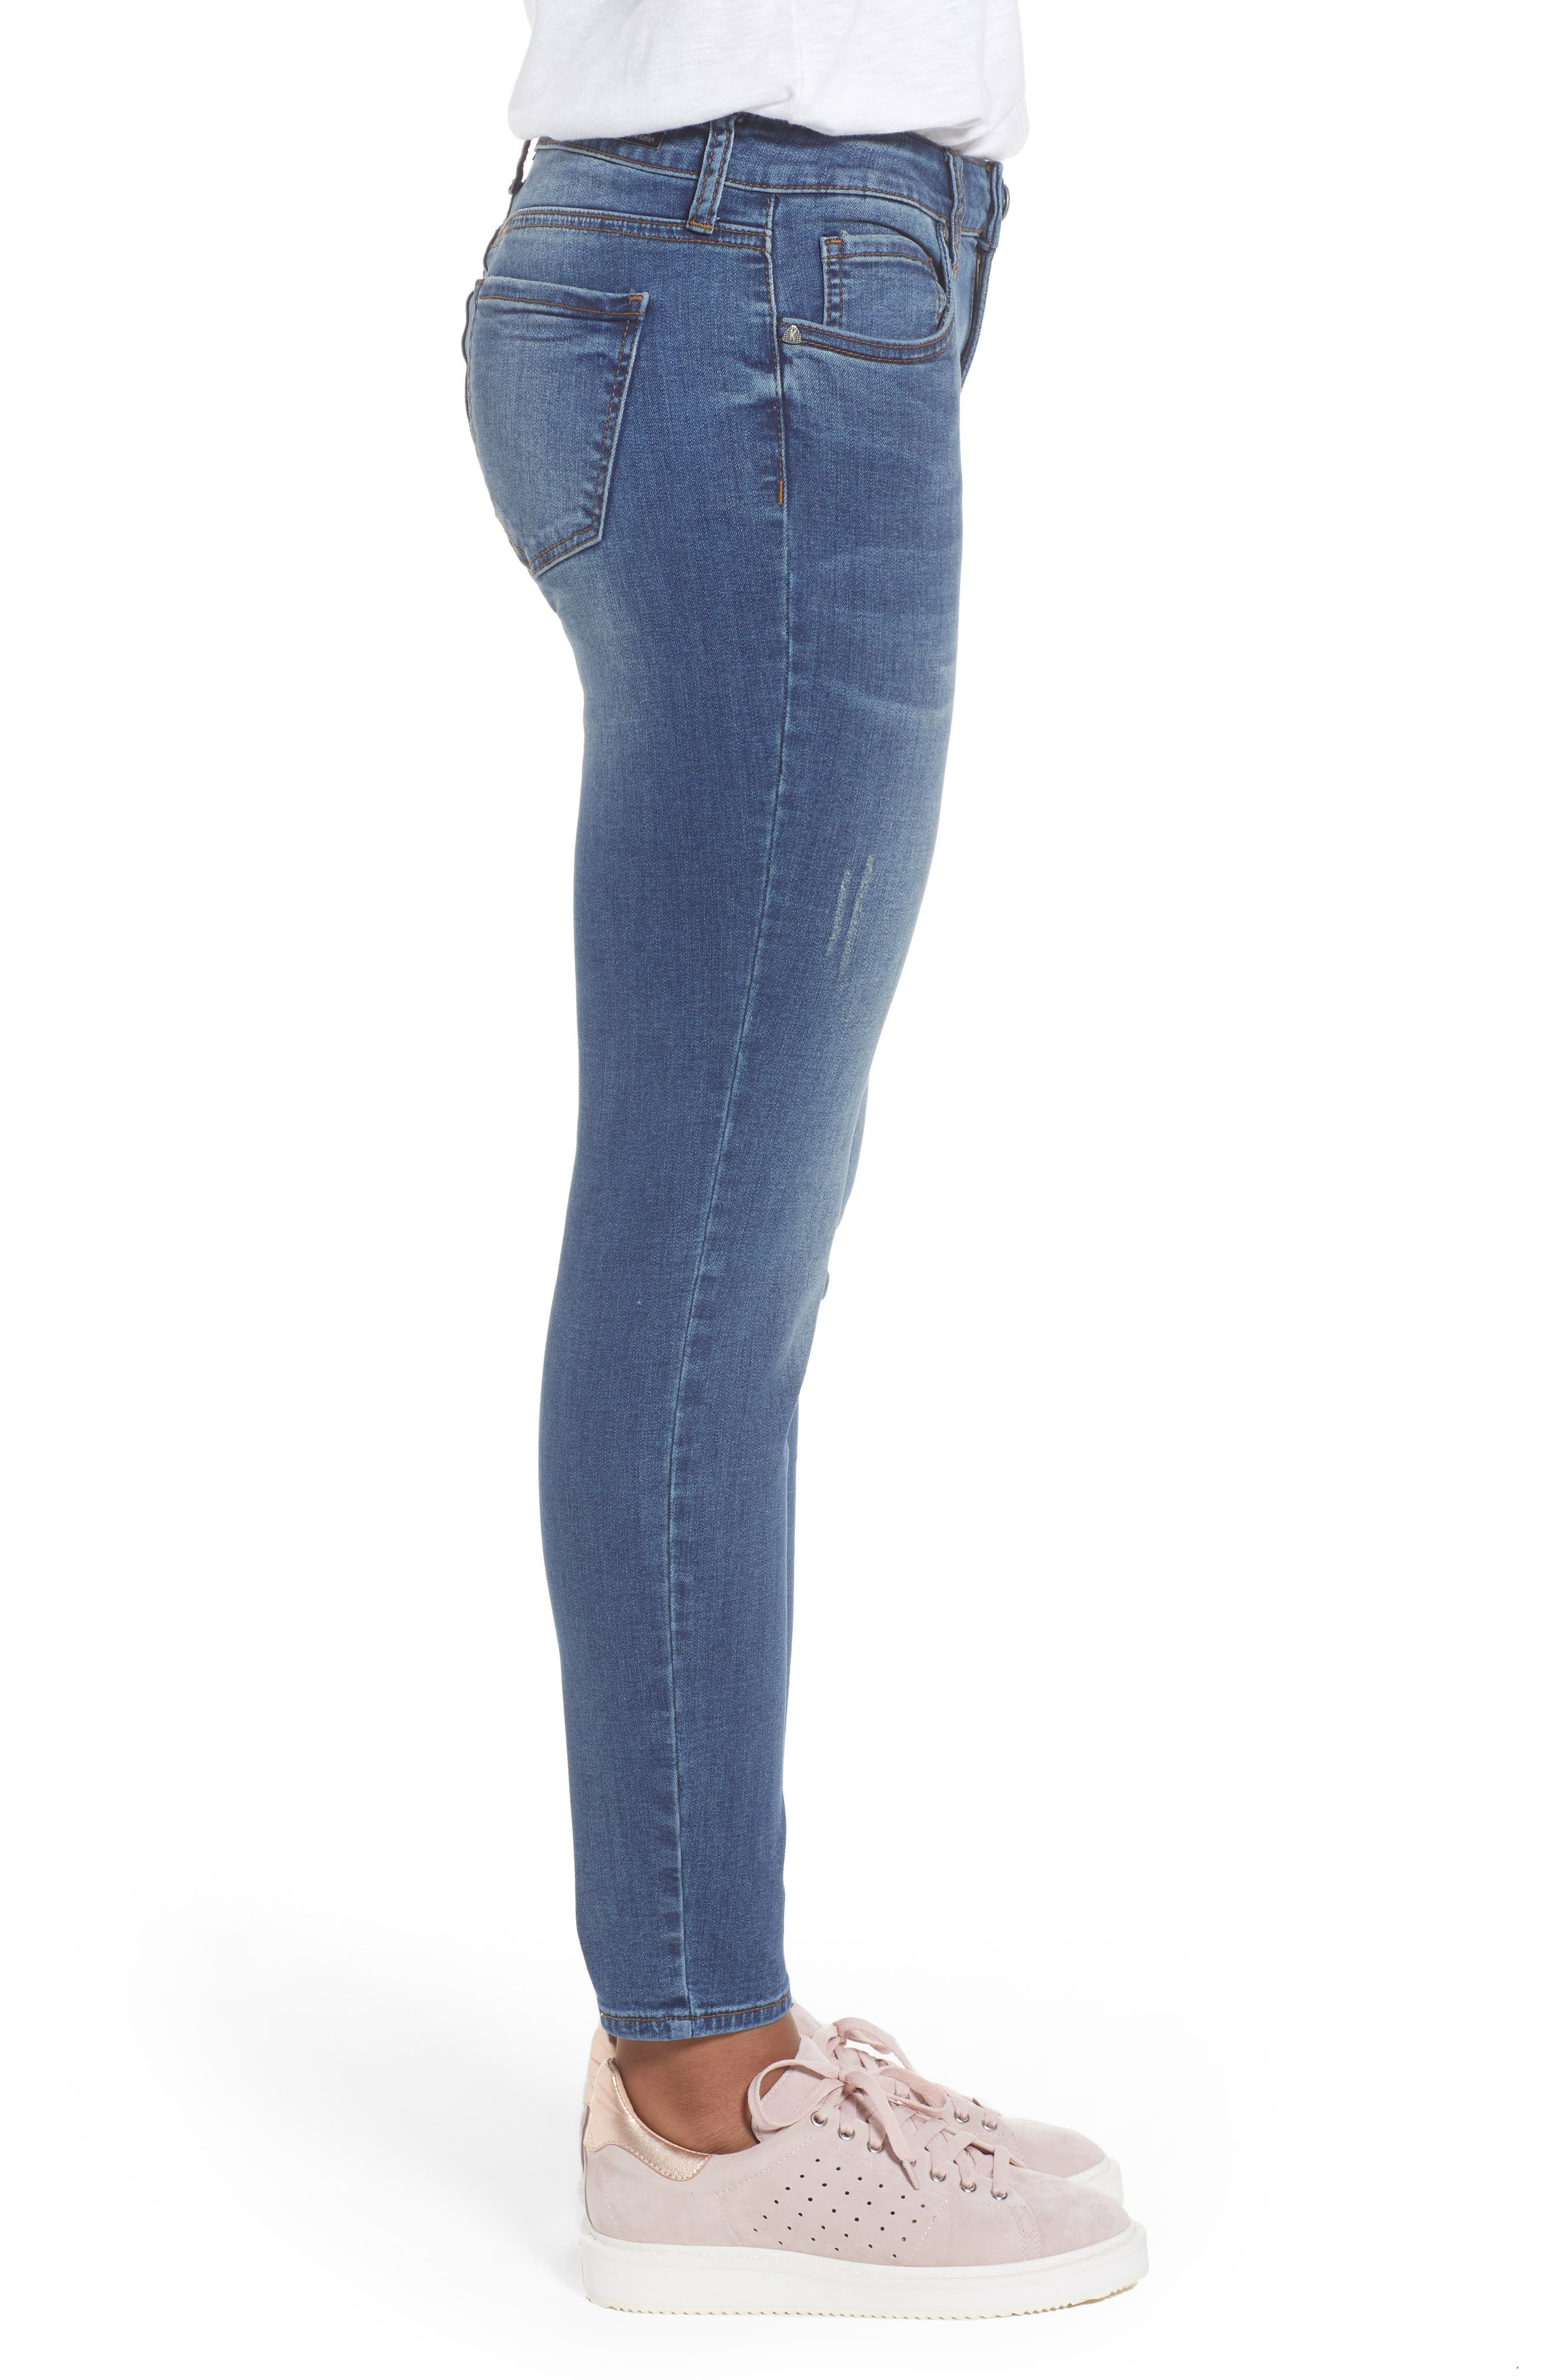 Donna Skinny Ankle Jeans,                             Alternate thumbnail 3, color,                             Engaged